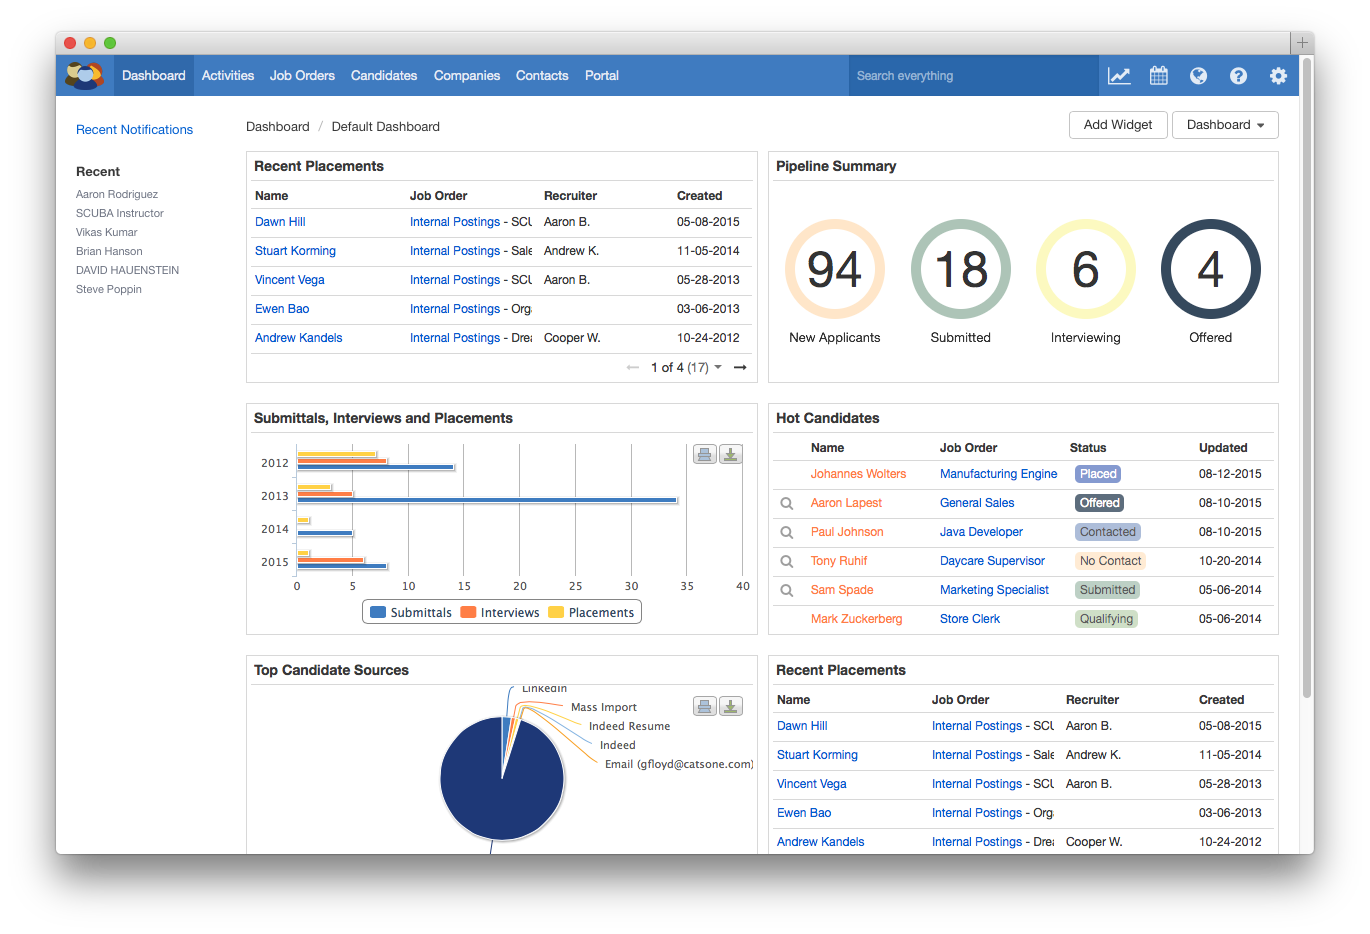 The dashboard gives an overview of recent activity, including recent calls, upcoming events, and recent hires.